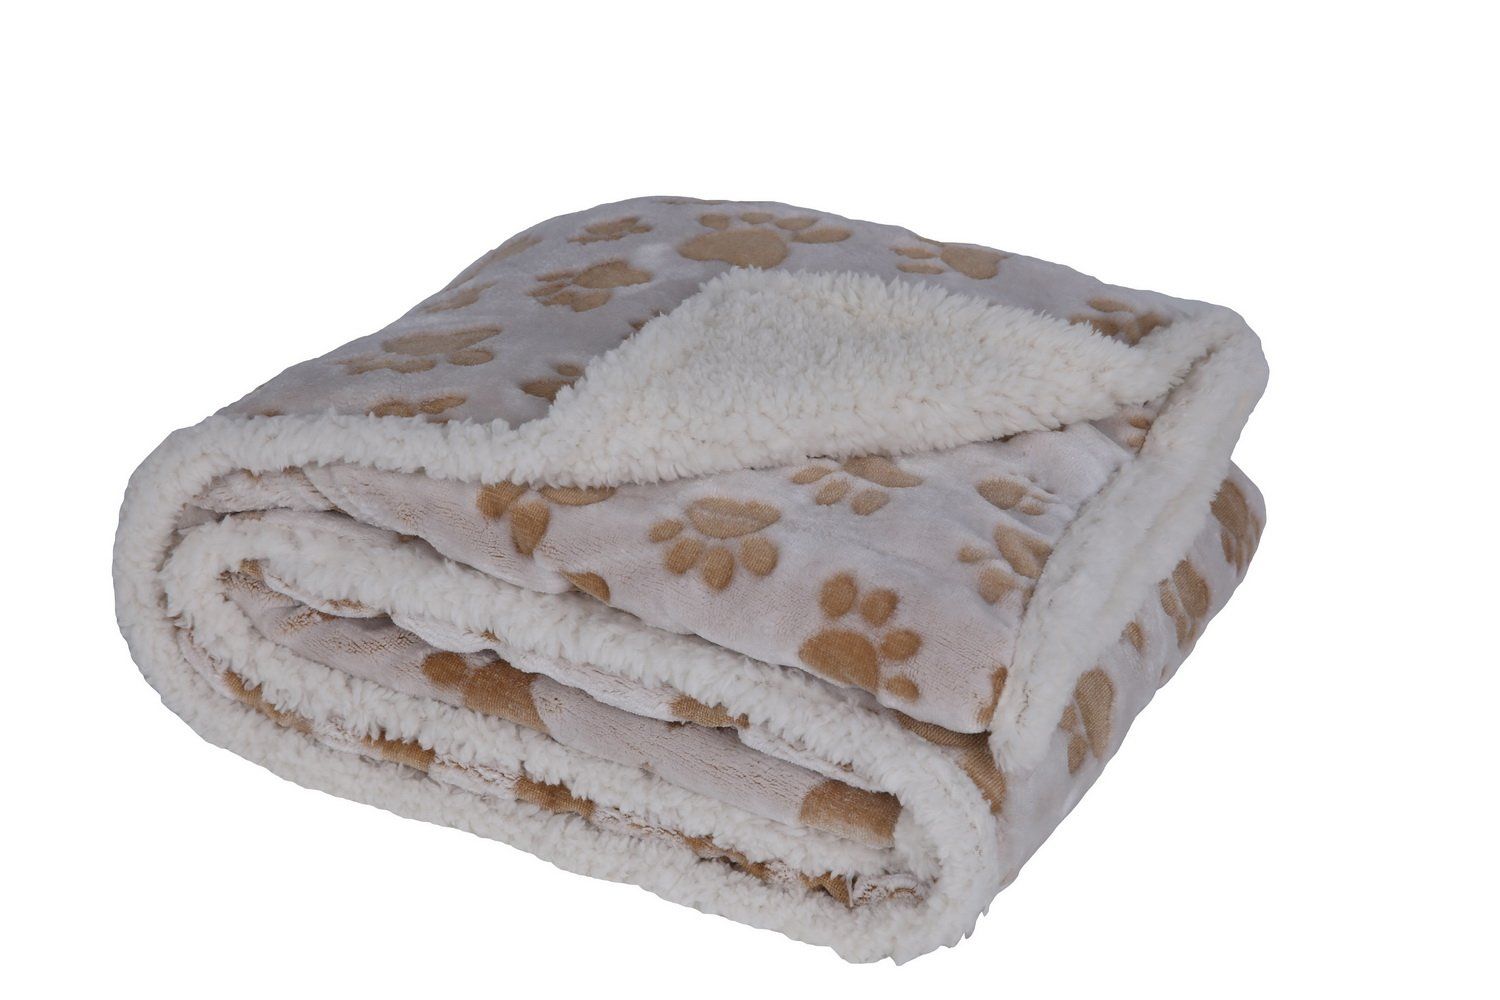 HappyCare Textiles 047393528926 Printed dog paw Flannel reverse to sherpa throw blanket, Taupe